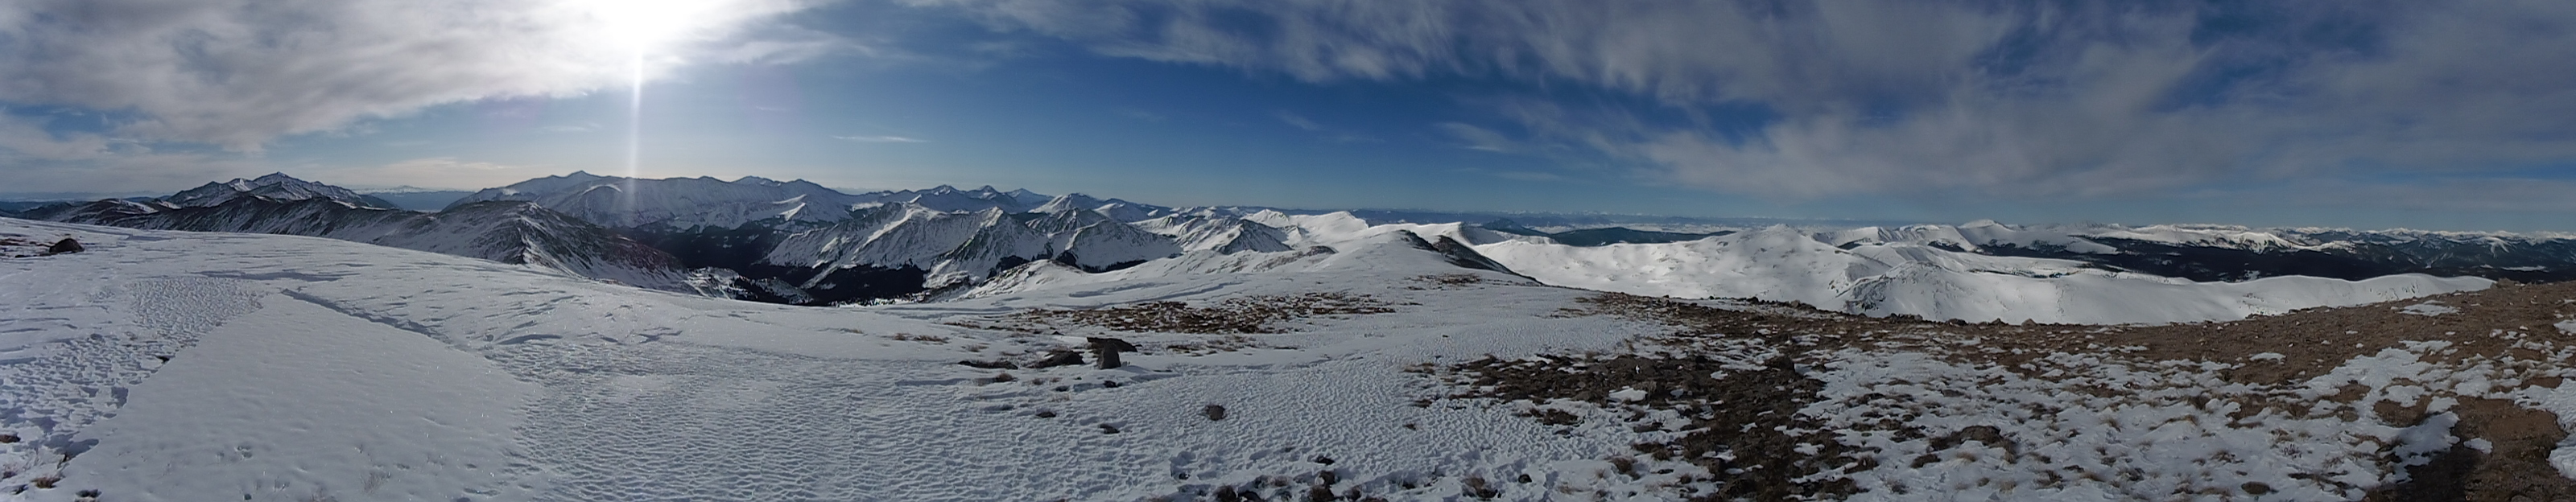 Pano looking south from Tincup Peak.